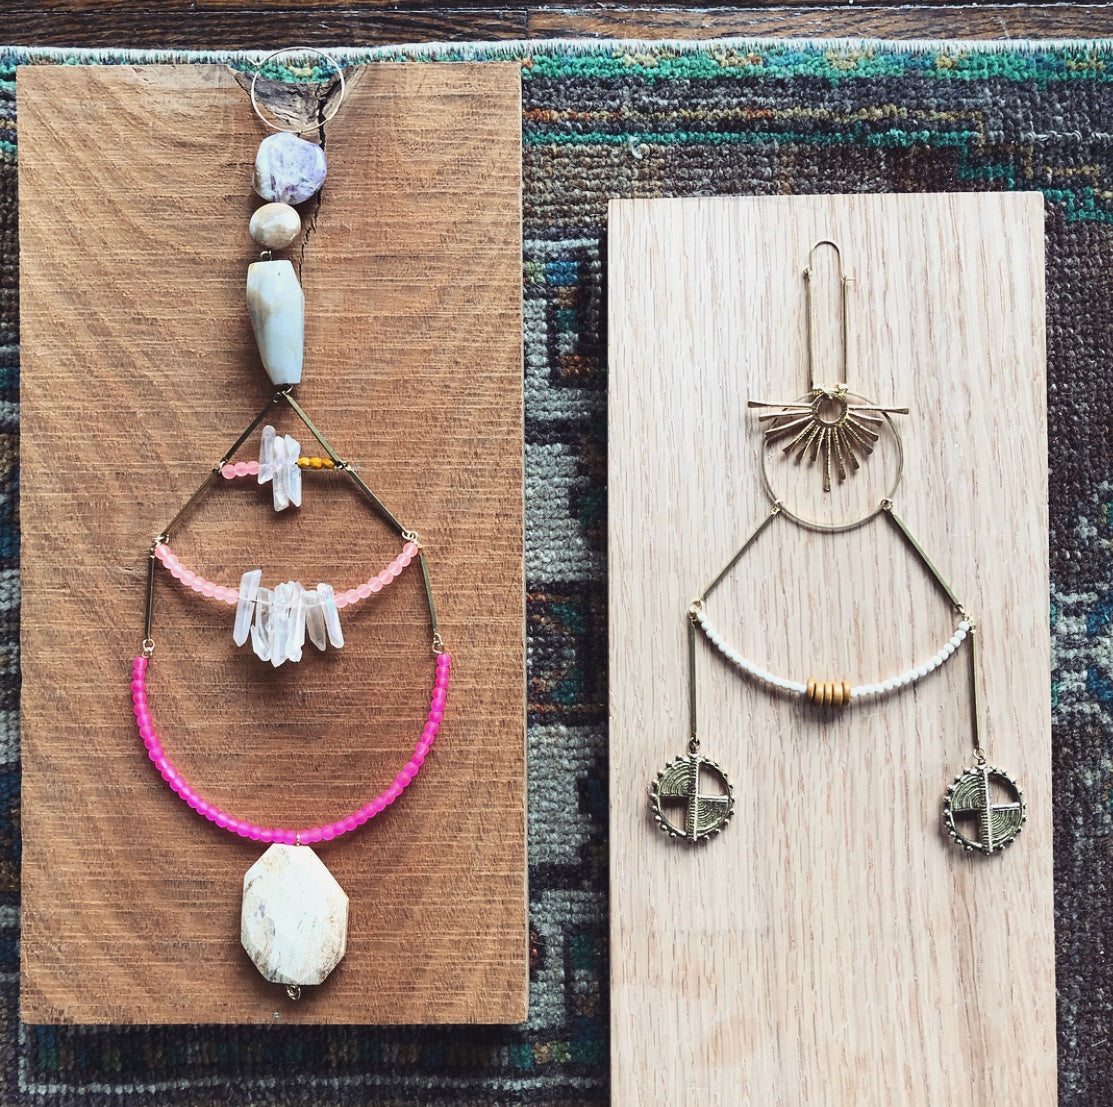 Bead + Wire Workshop: Soul Talismans with Fate & Coincidence on Saturday August 17 at 12pm